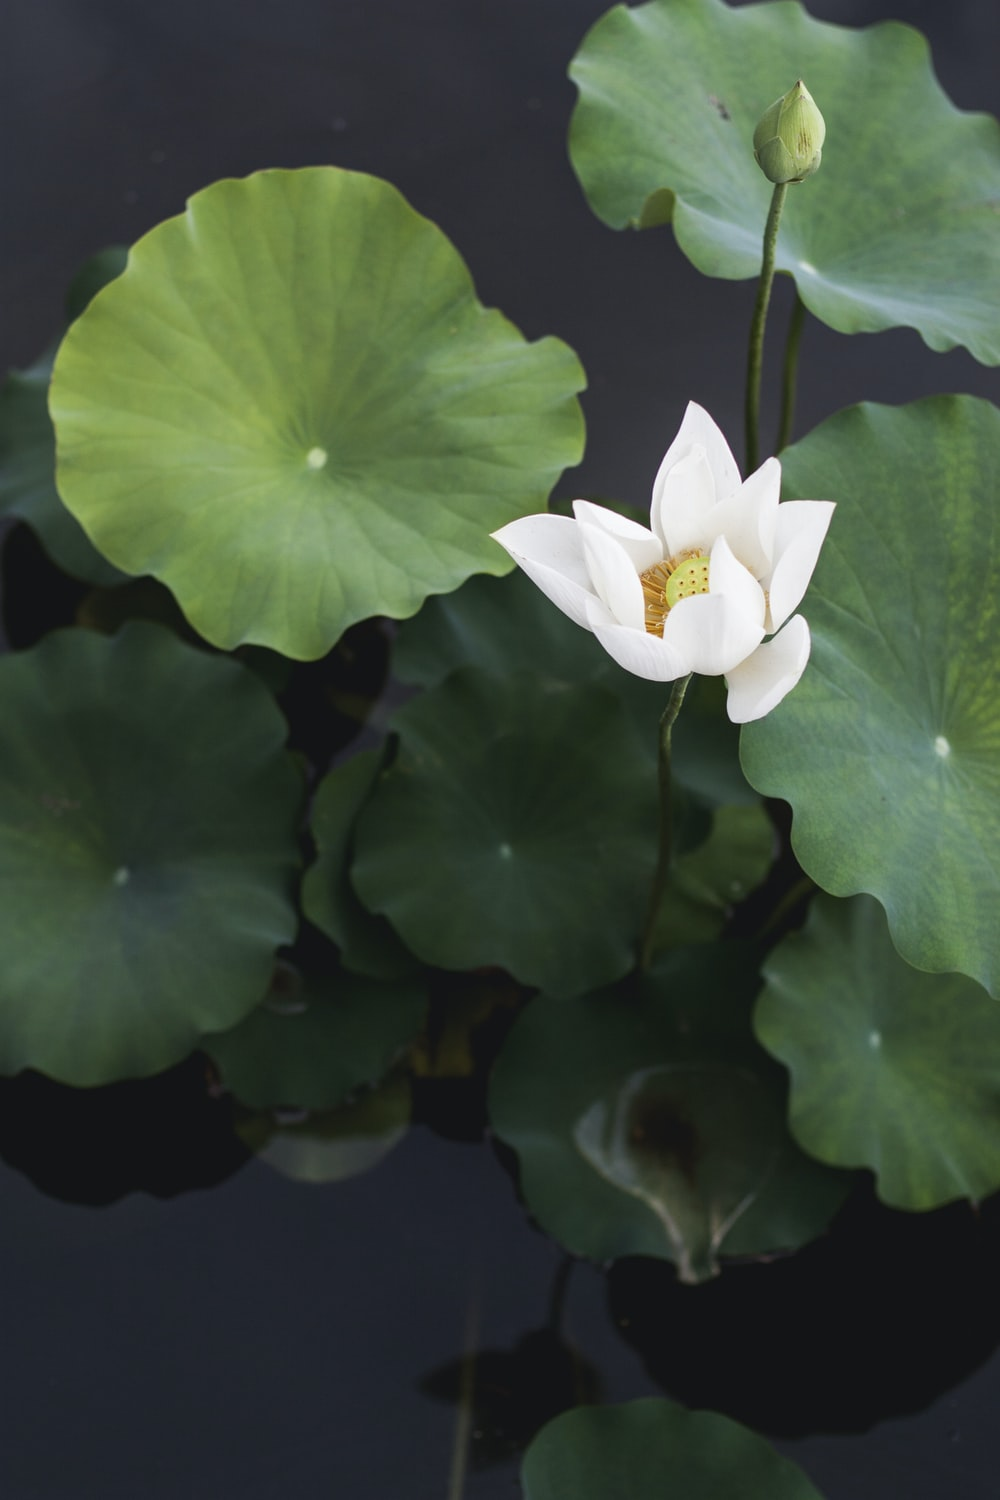 Lily pad pictures hq download free images on unsplash white lotus flower izmirmasajfo